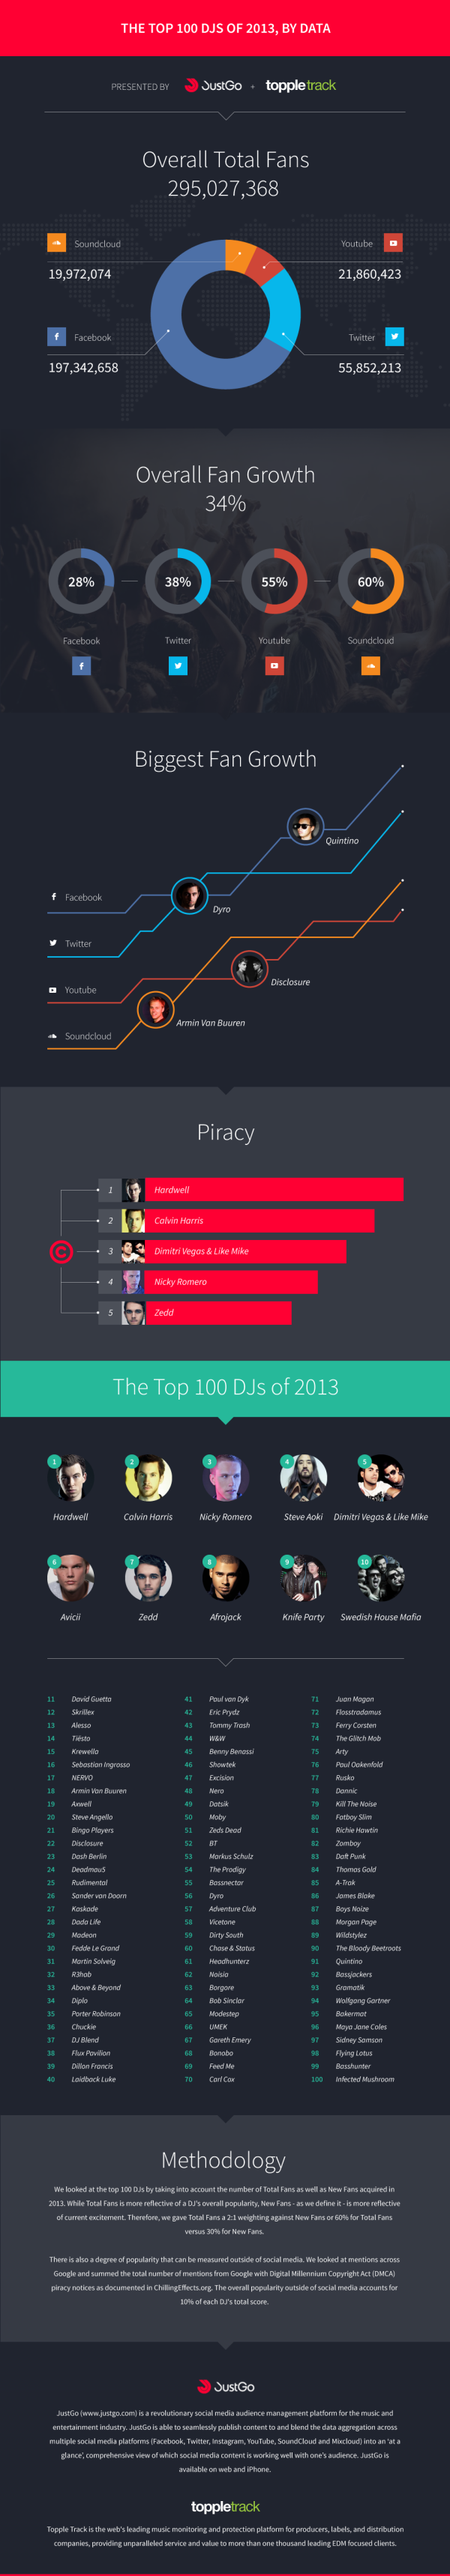 Top 100 DJ's of 2013 infographic